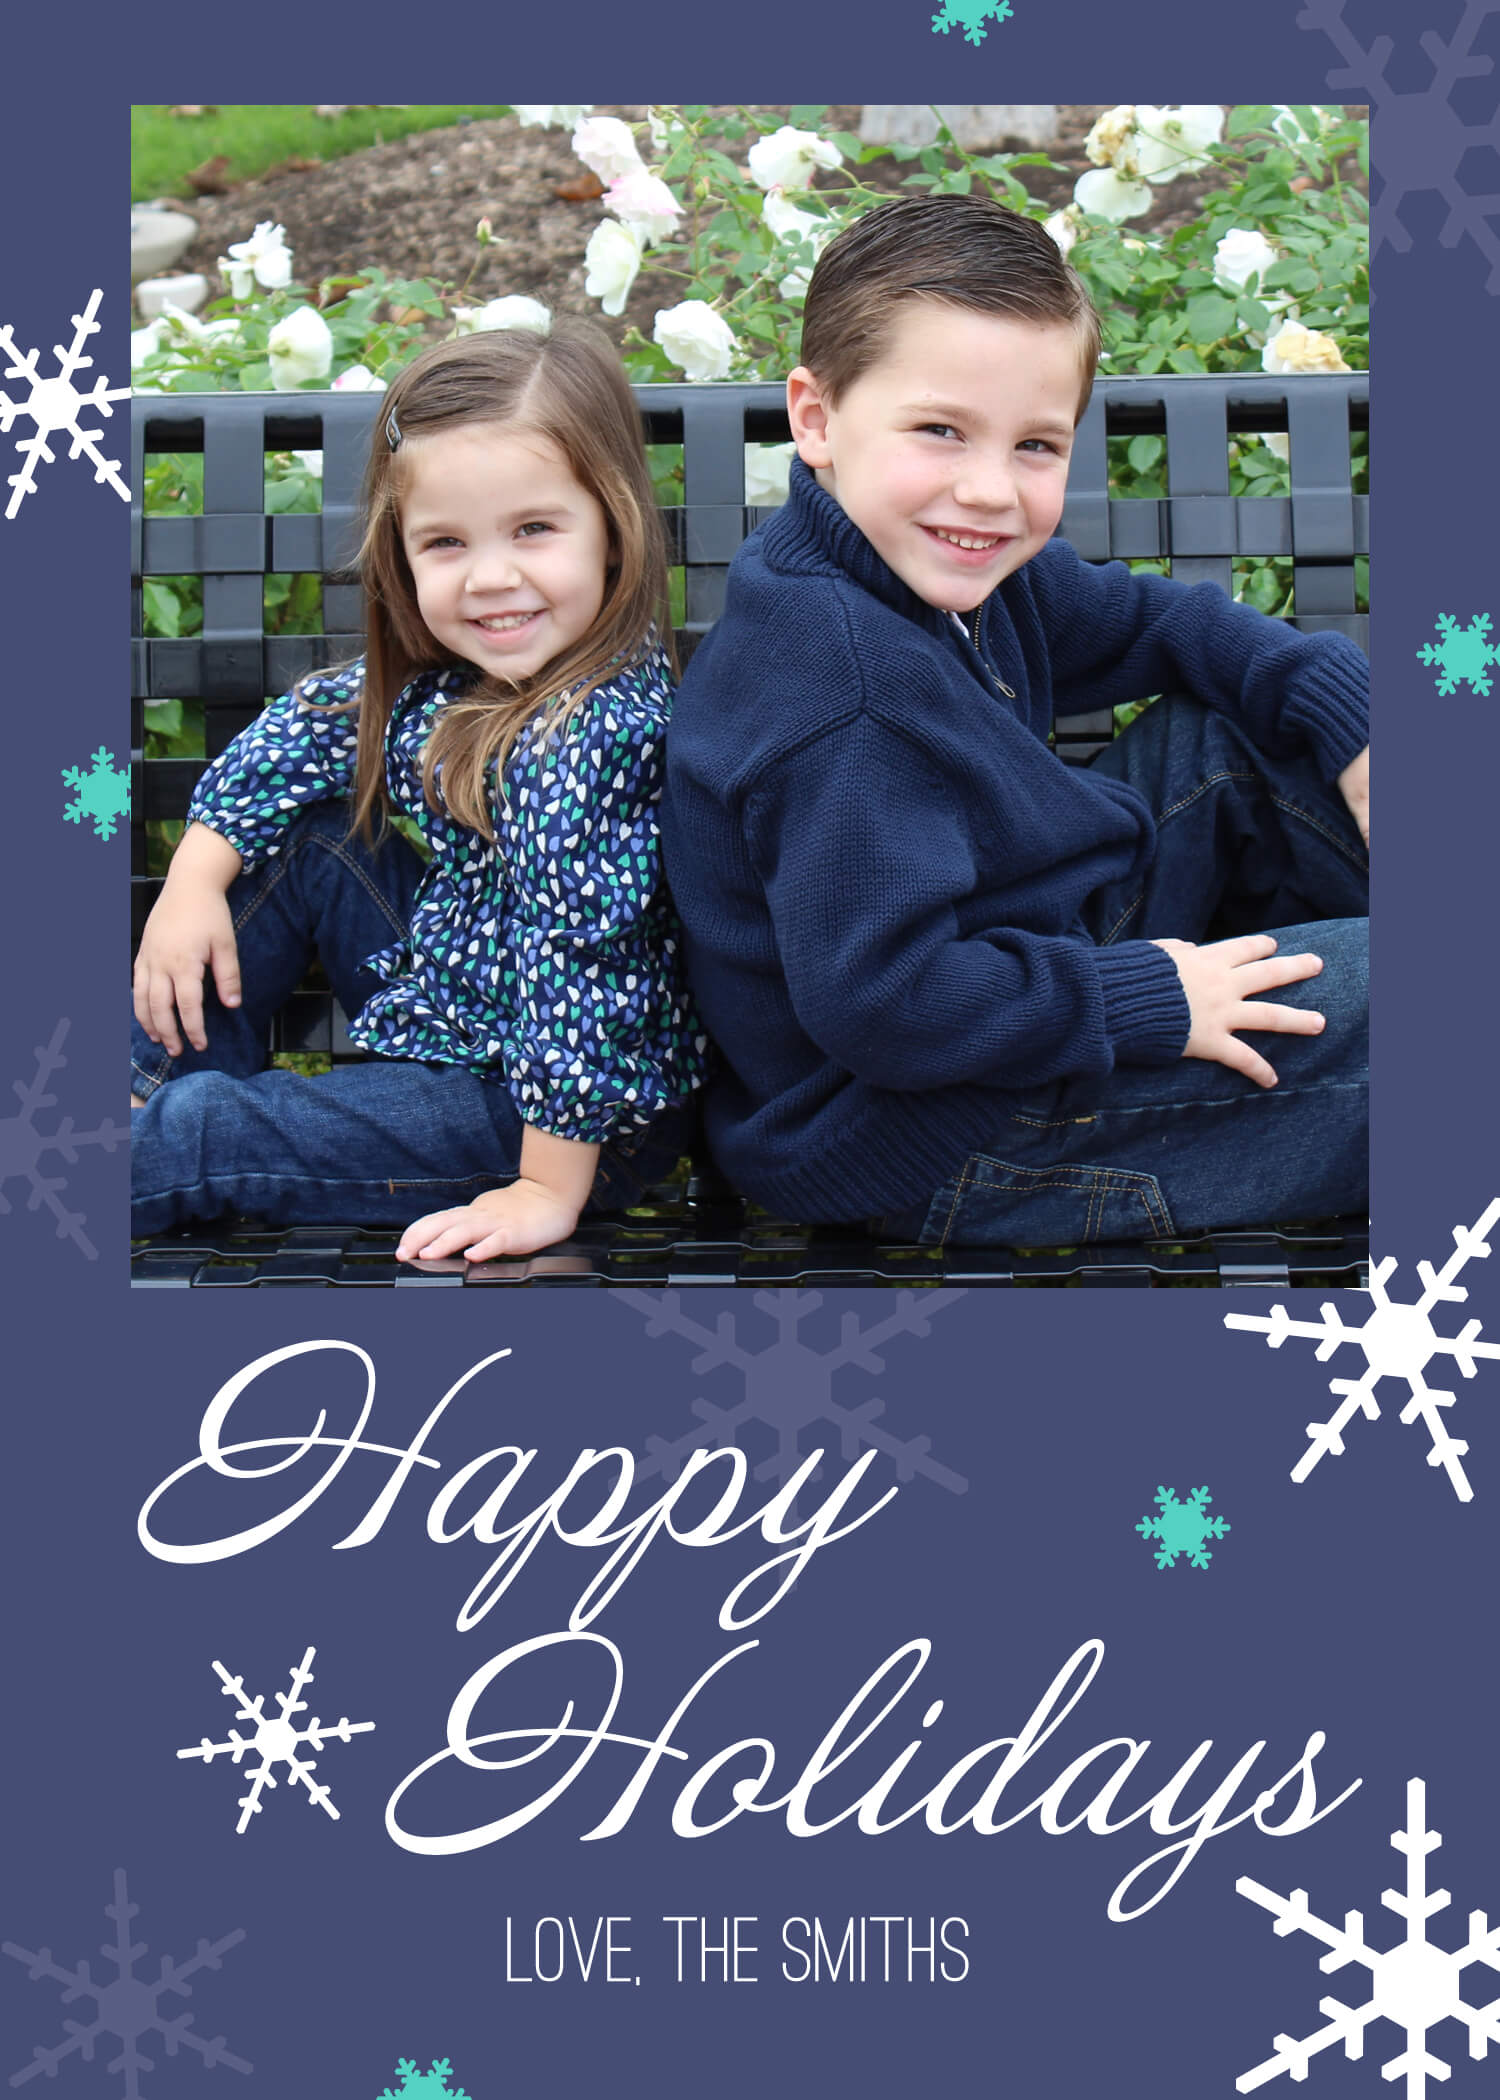 Holiday Photo Card & Pixlr Video Tutorial – Designer Blogs Inside Free Holiday Photo Card Templates